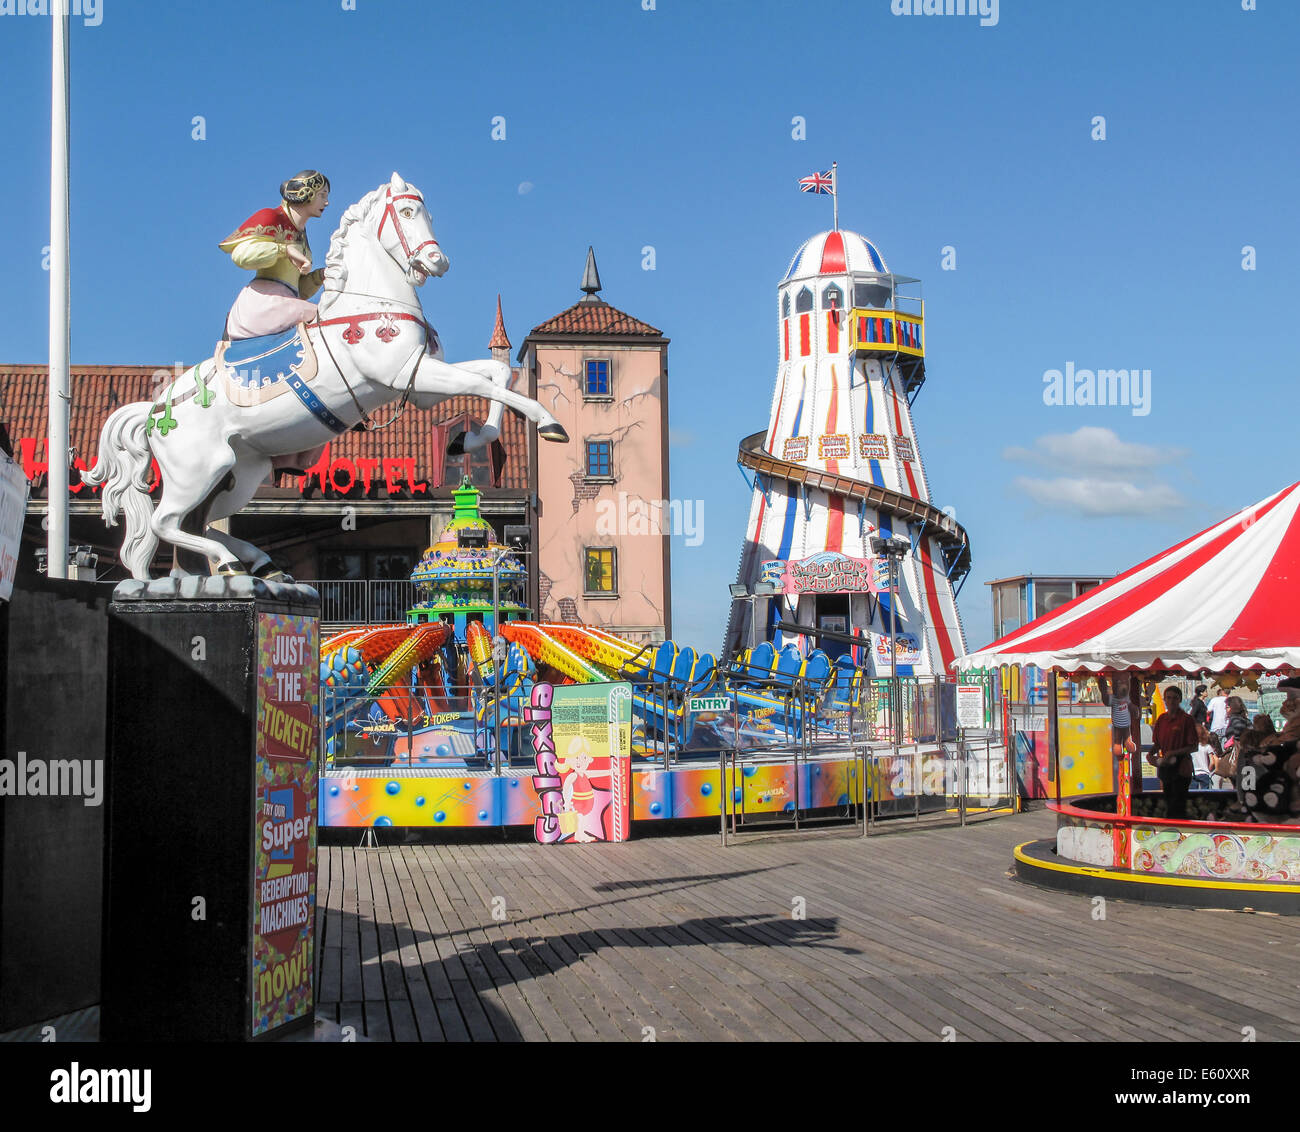 South coast sightseeing: Helter skelter and colourful fairground attractions at the funfair on Brighton Pier popular for family holidays in summer Stock Photo